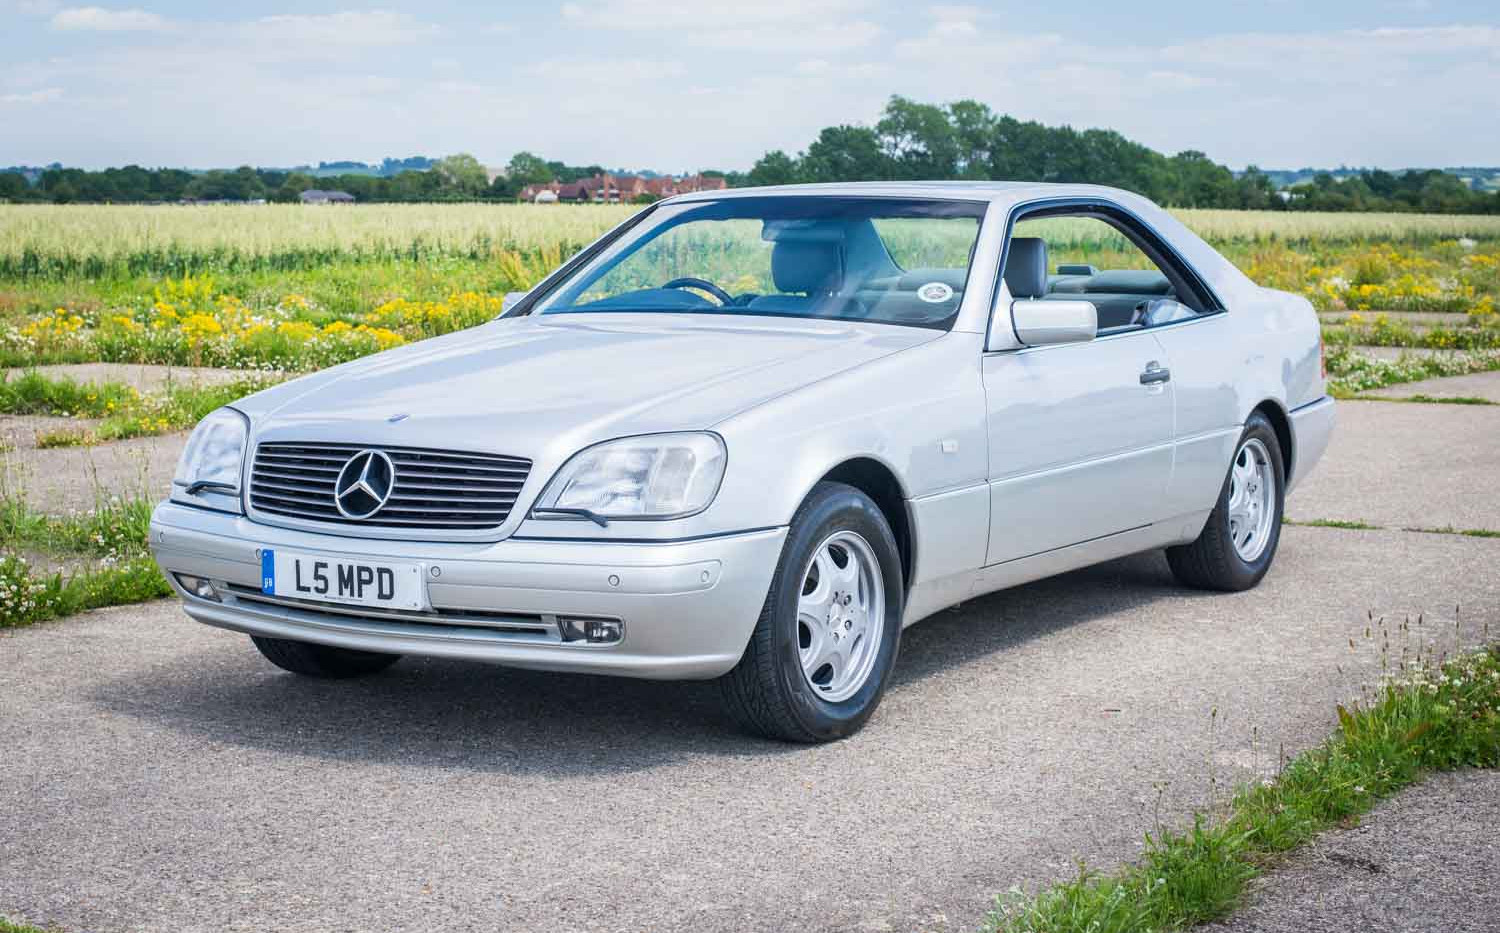 1998 Mercedes-Benz W140 CL420 for sale-3